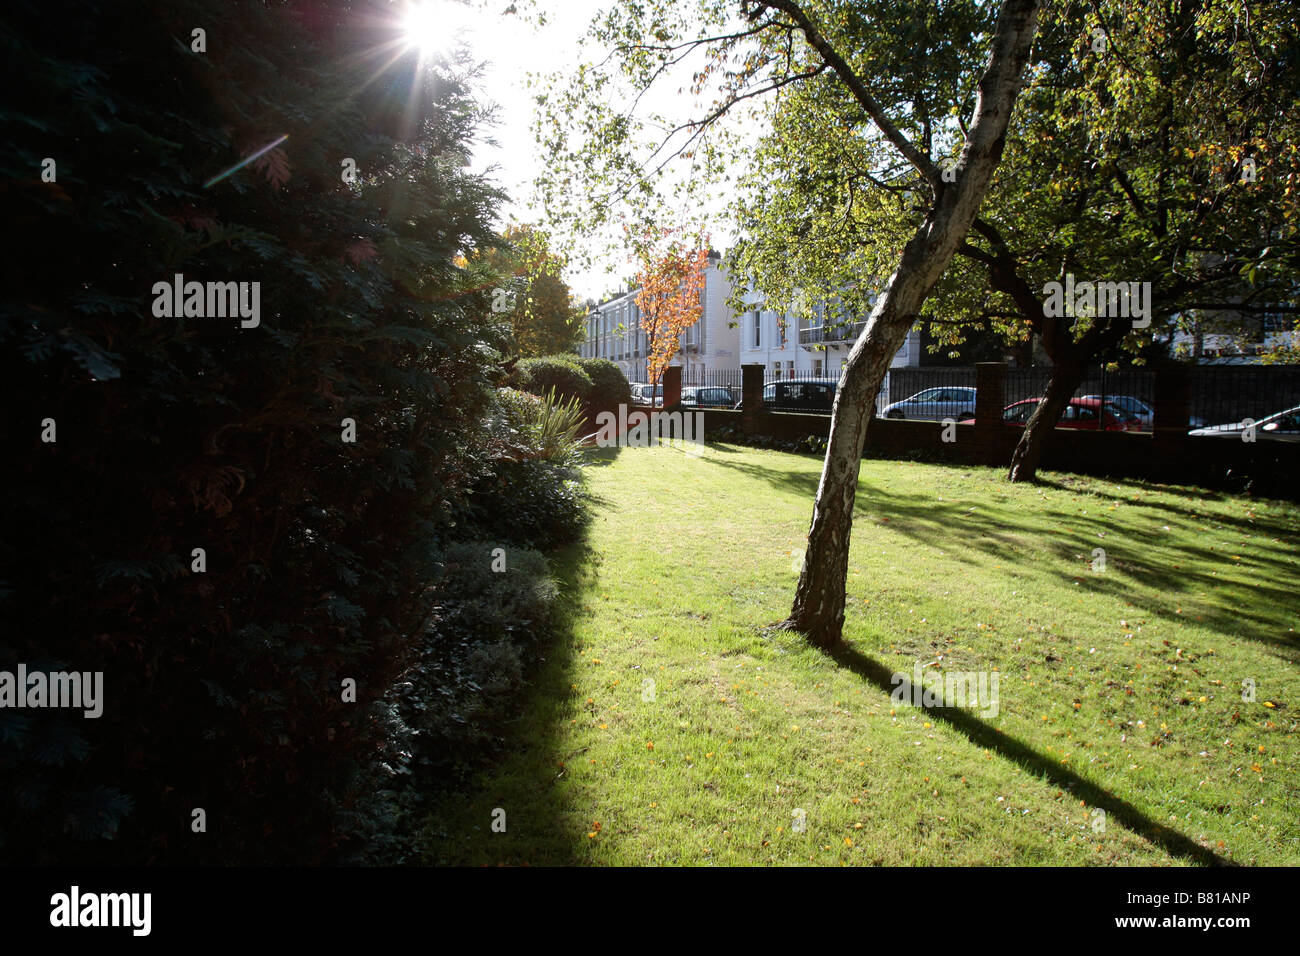 General view of the garden on a London housing estate. - Stock Image